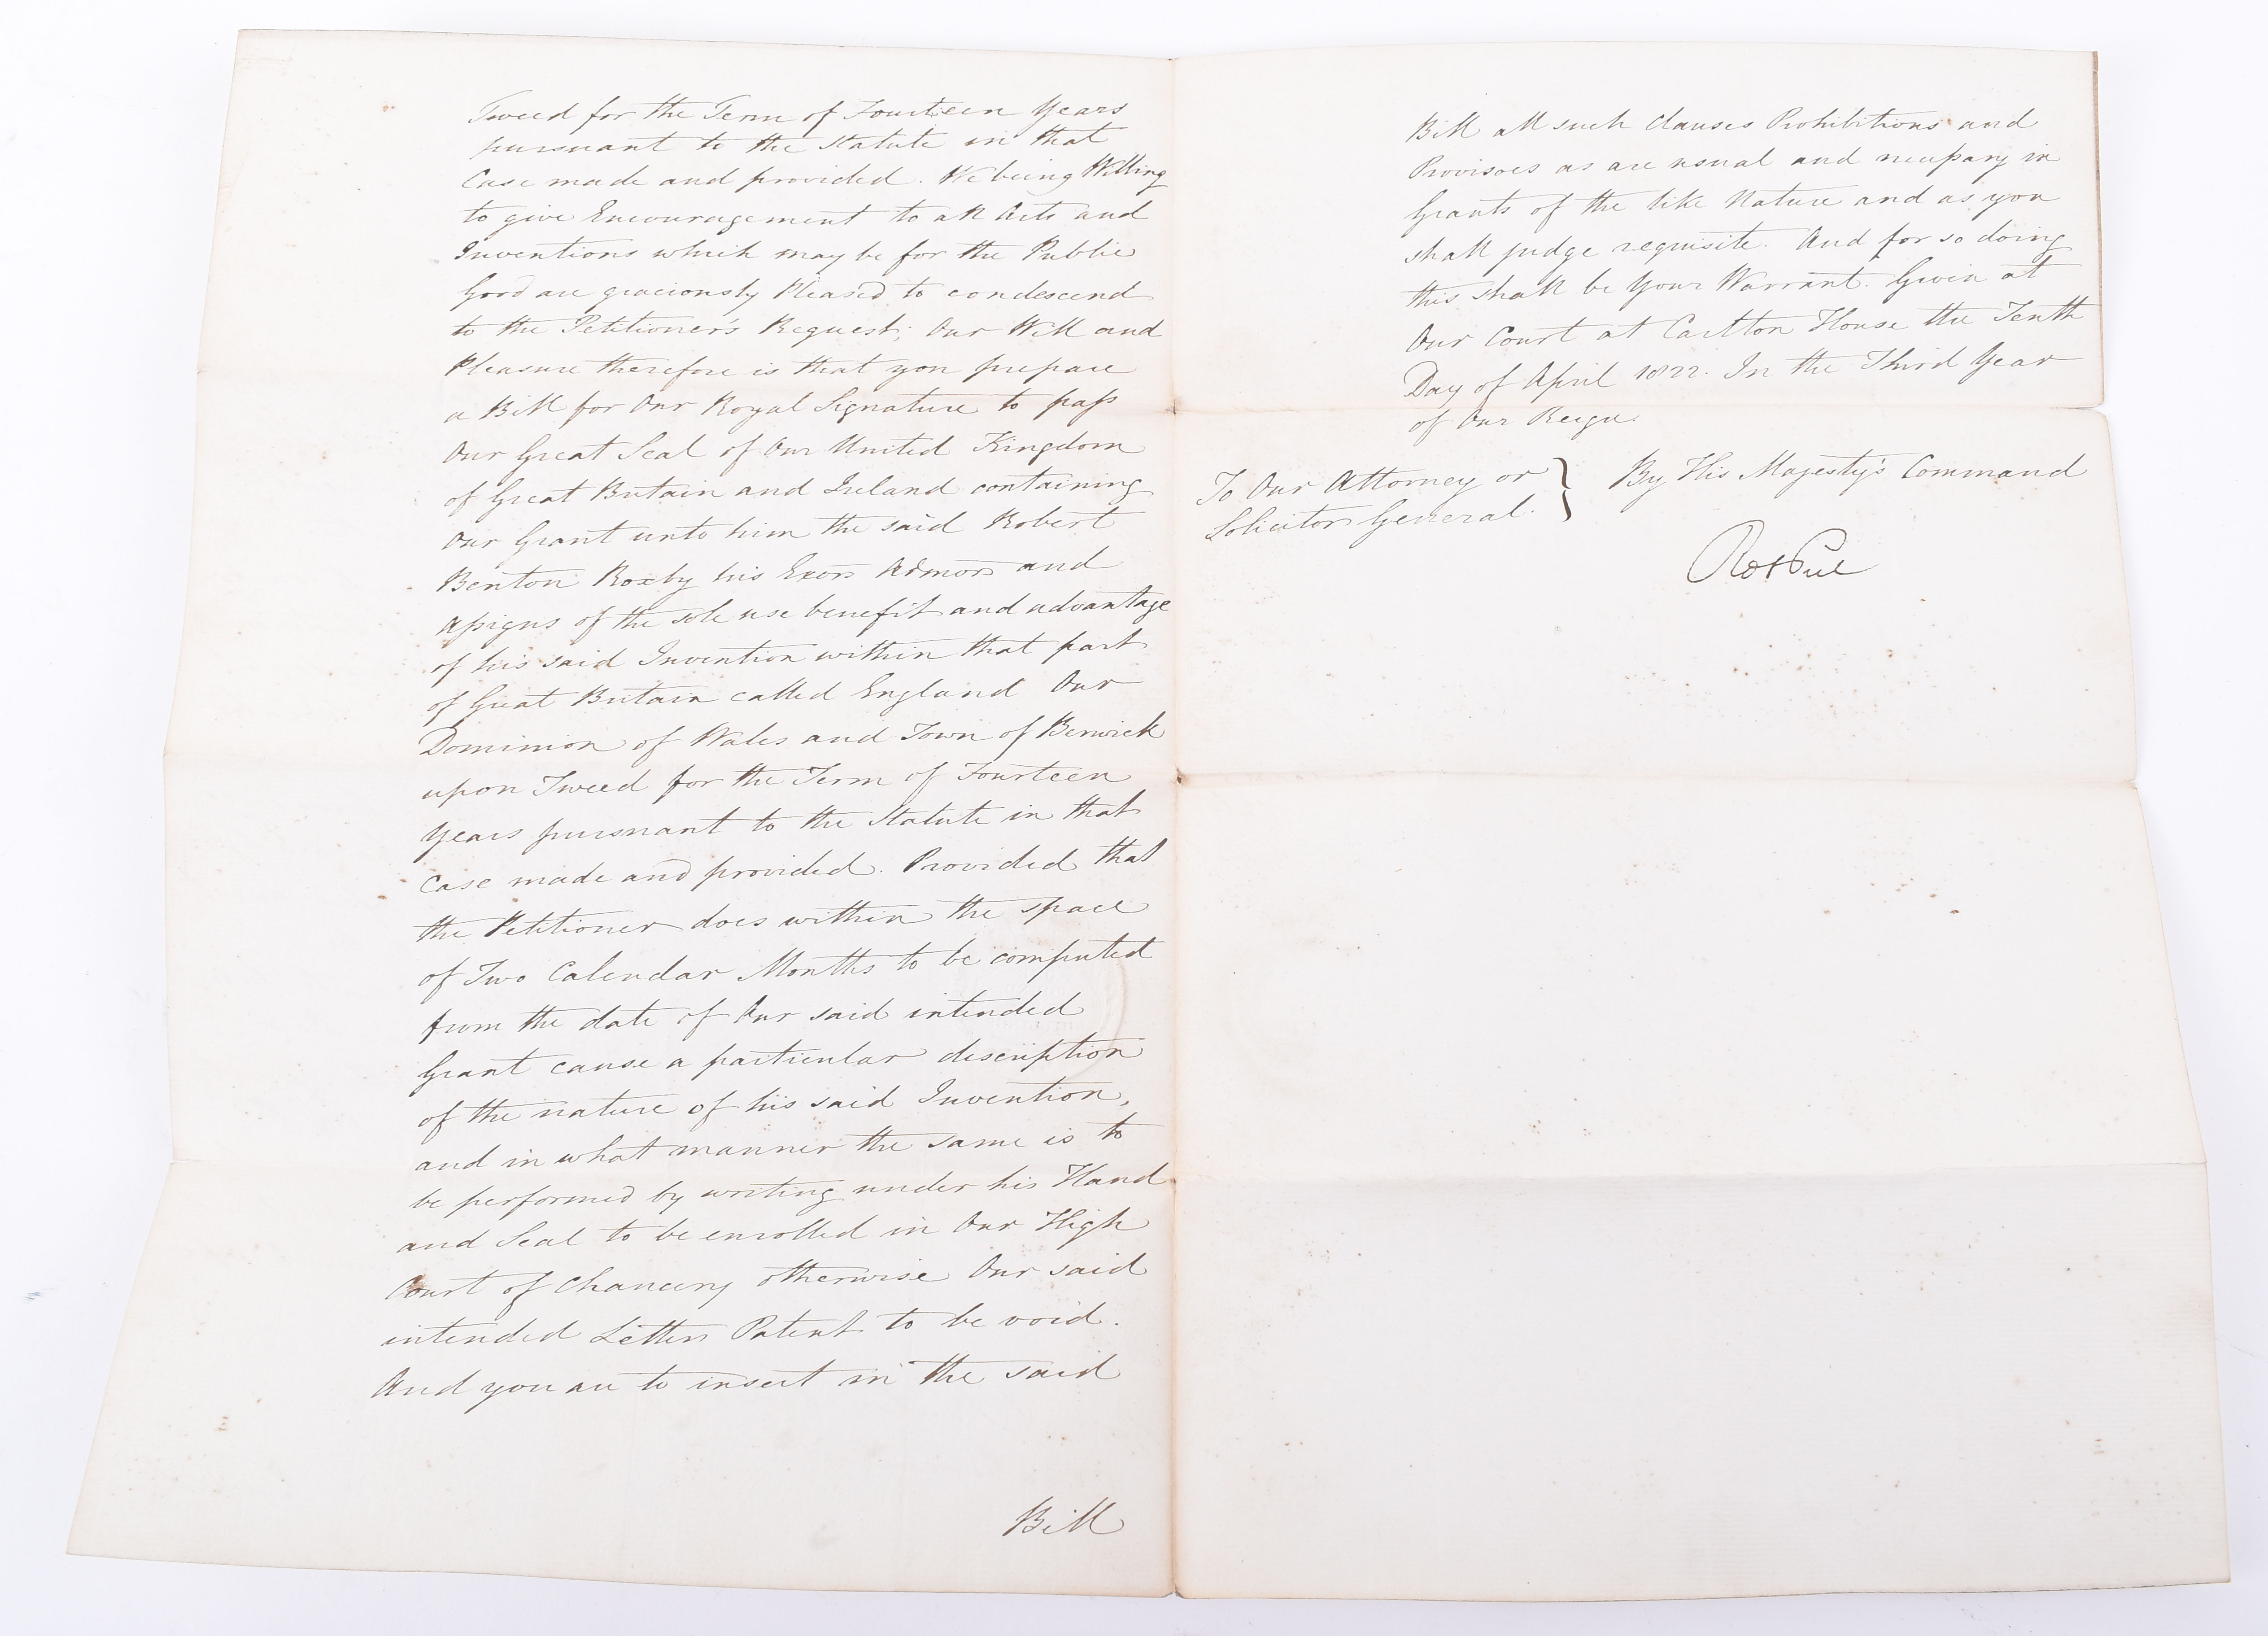 Lot 59 - Robert Benton Boxby Gent. Document, issued by the British Government